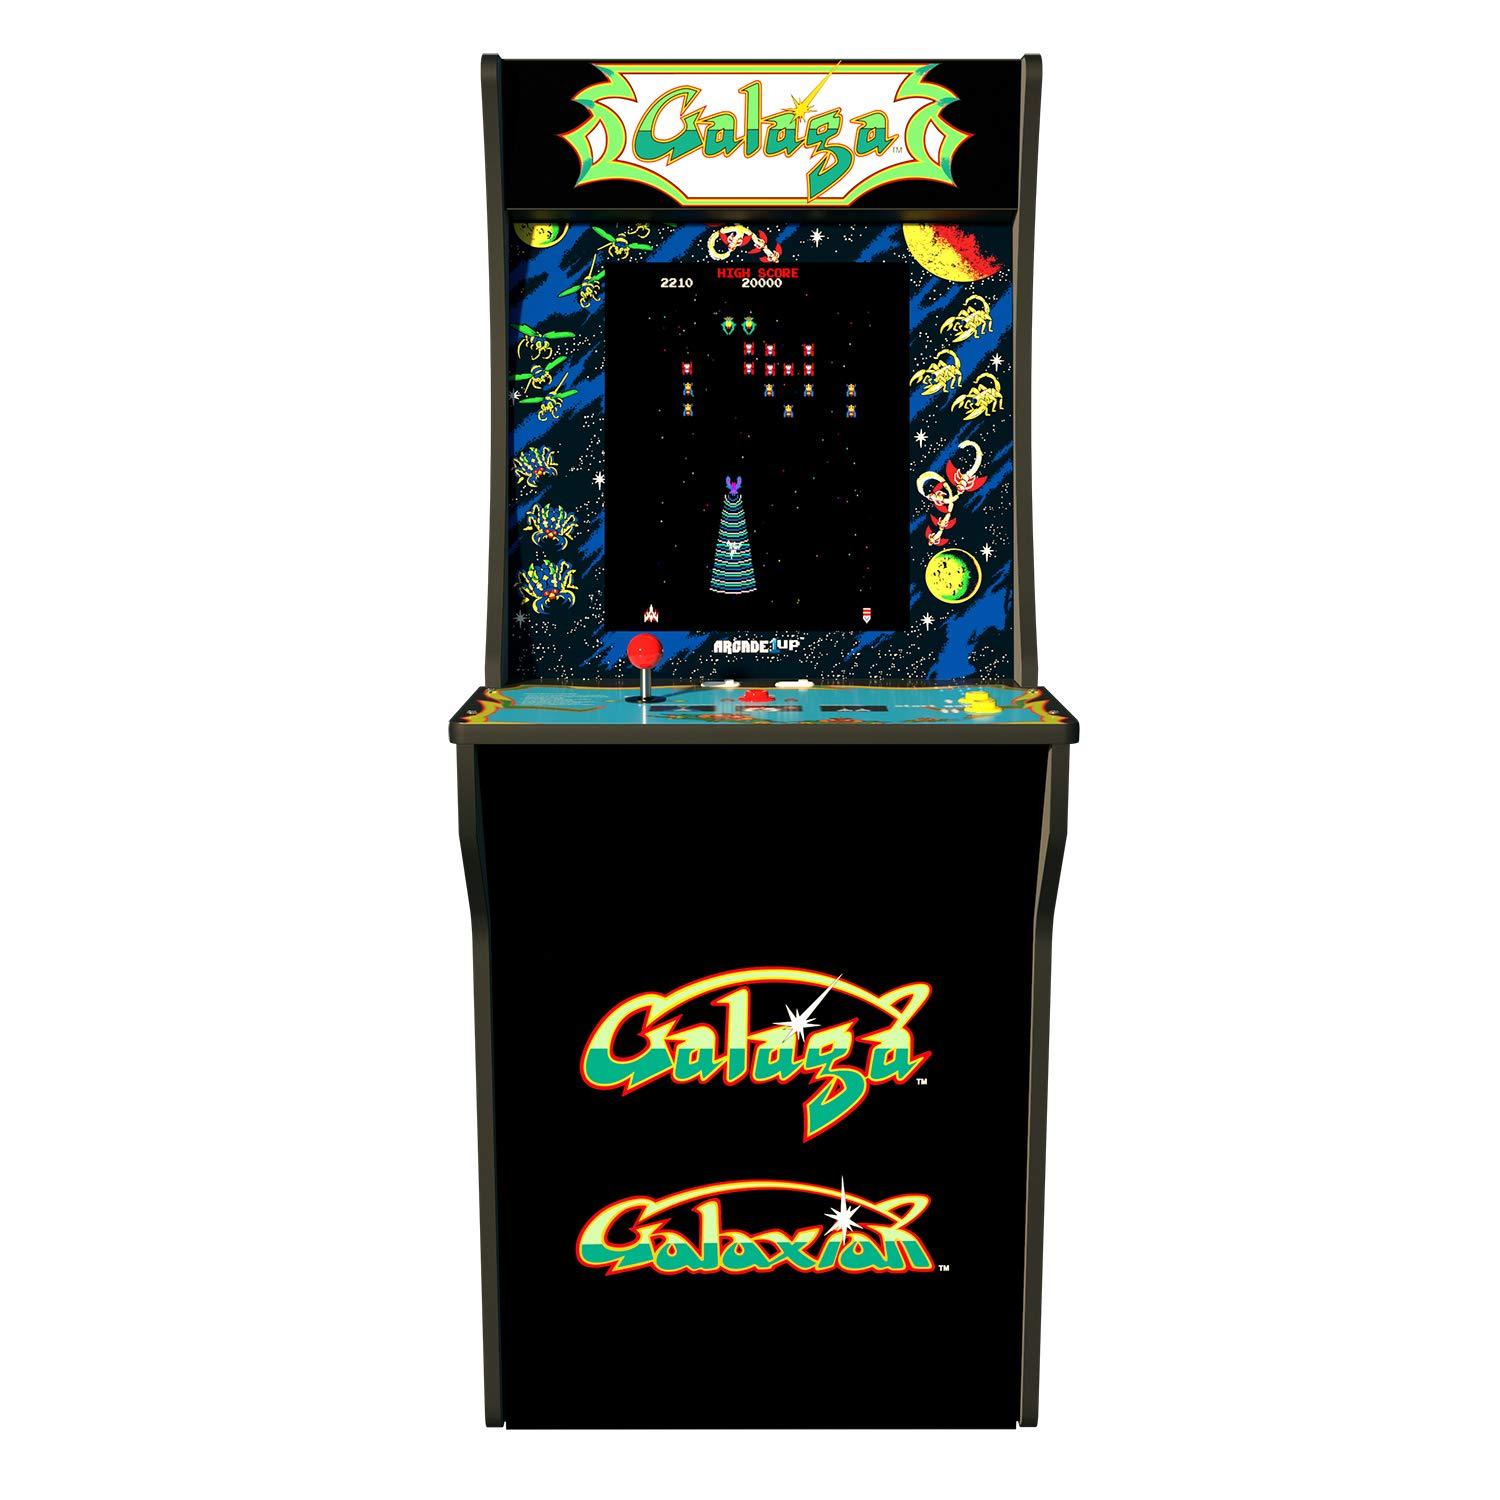 Arcade 1Up Galaga Deluxe Arcade System with Riser, 5 feet by Arcade1Up (Image #3)